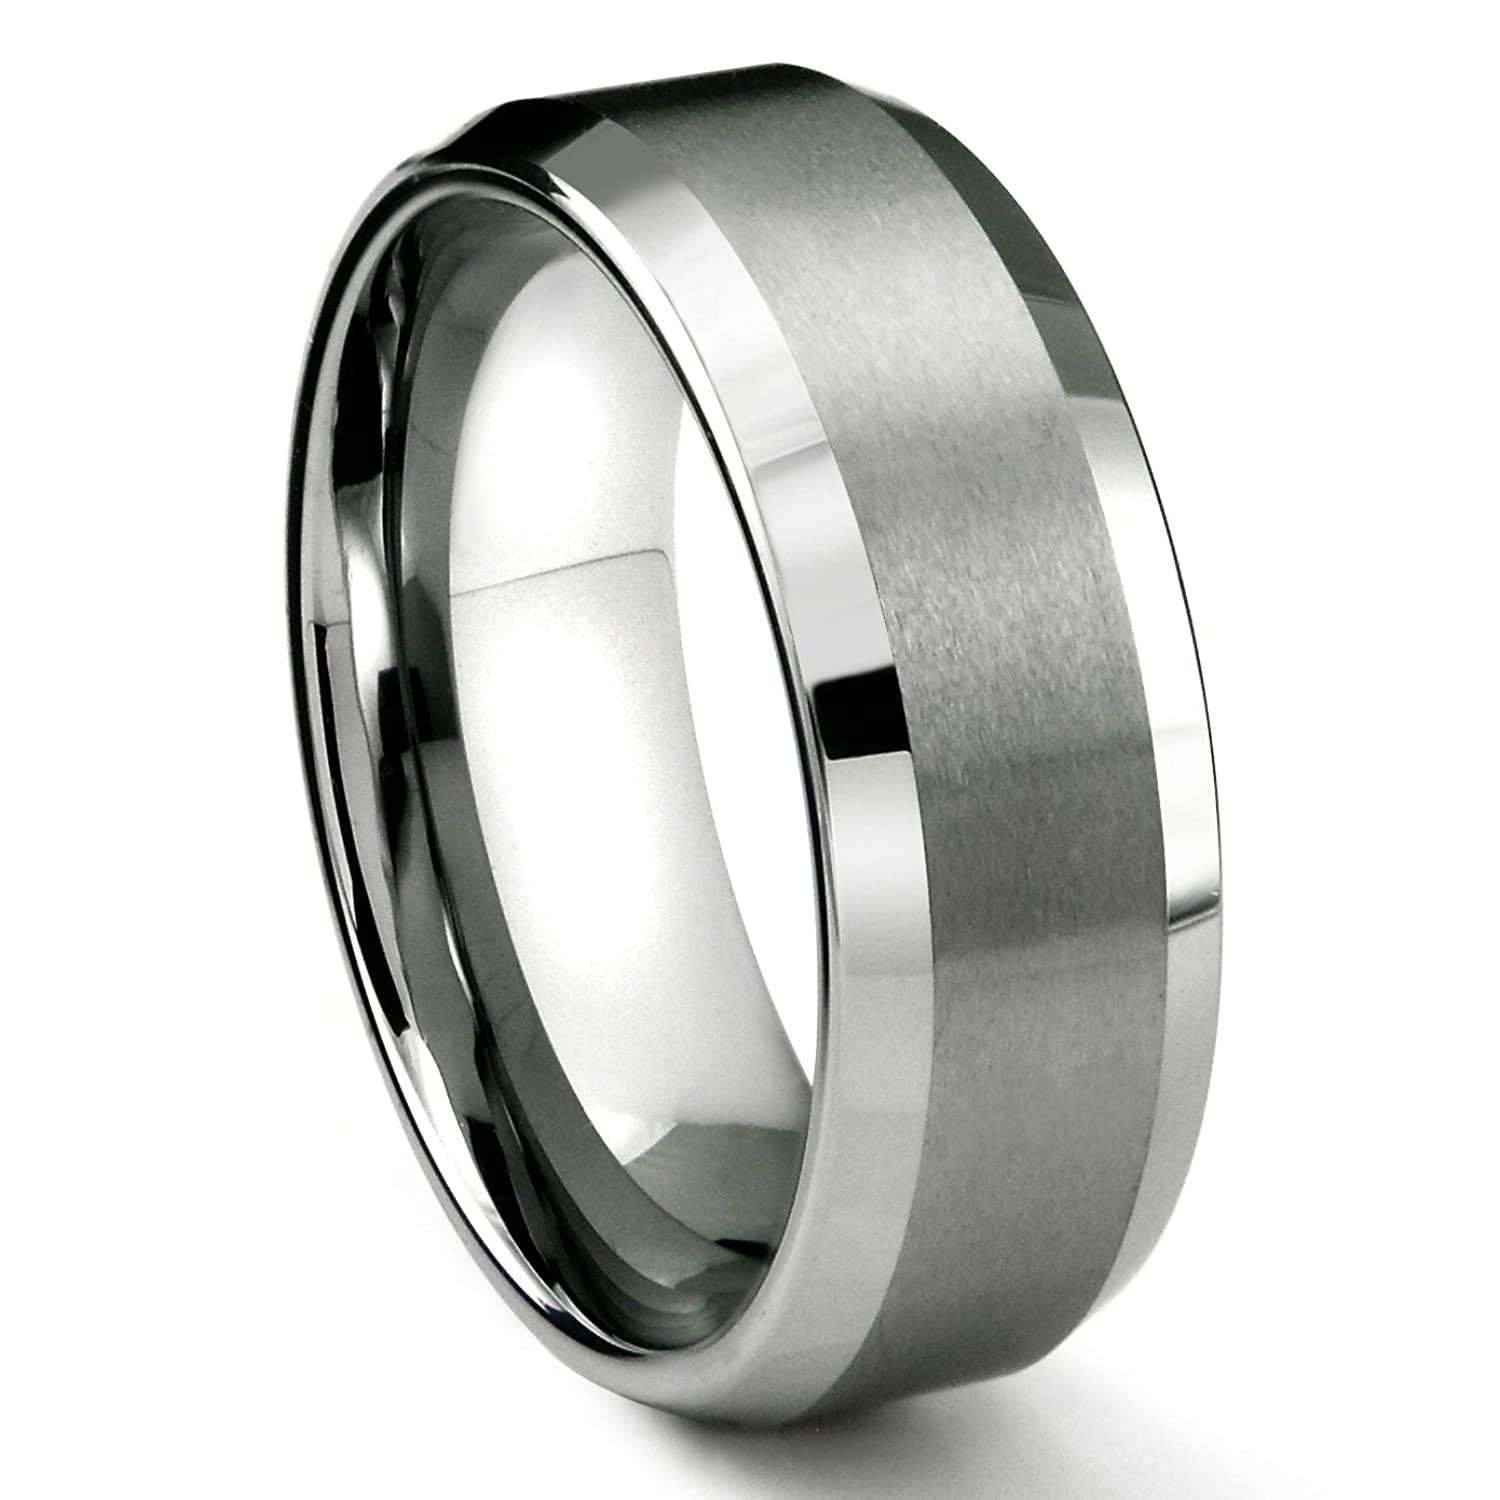 band men set jstyle bands a ring male mm steel dp rings stainless pcs amazon cool com for wedding simple